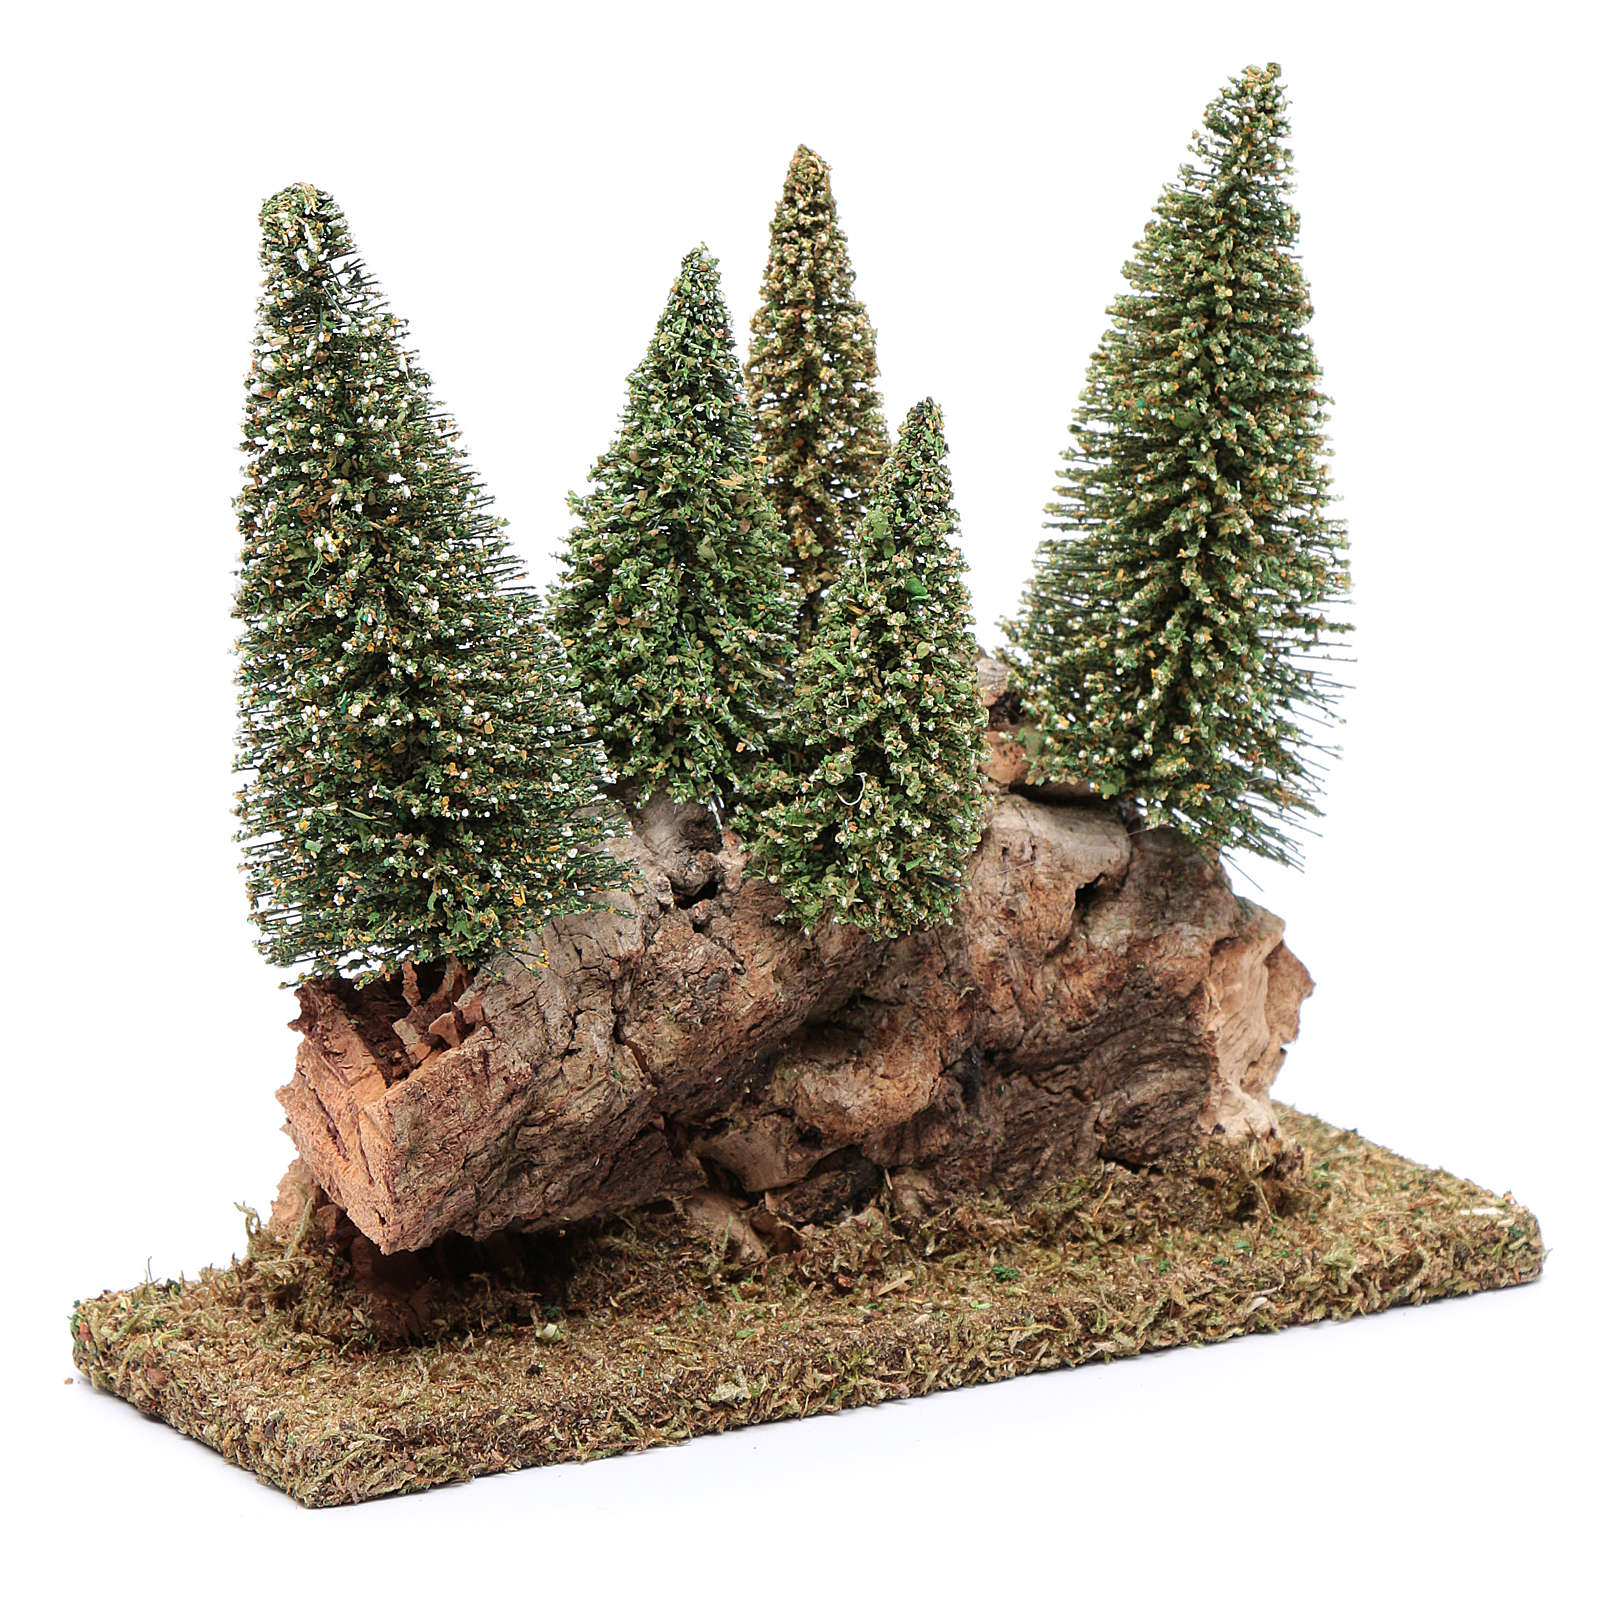 Hill with pine forest 20x20x5 cm 4